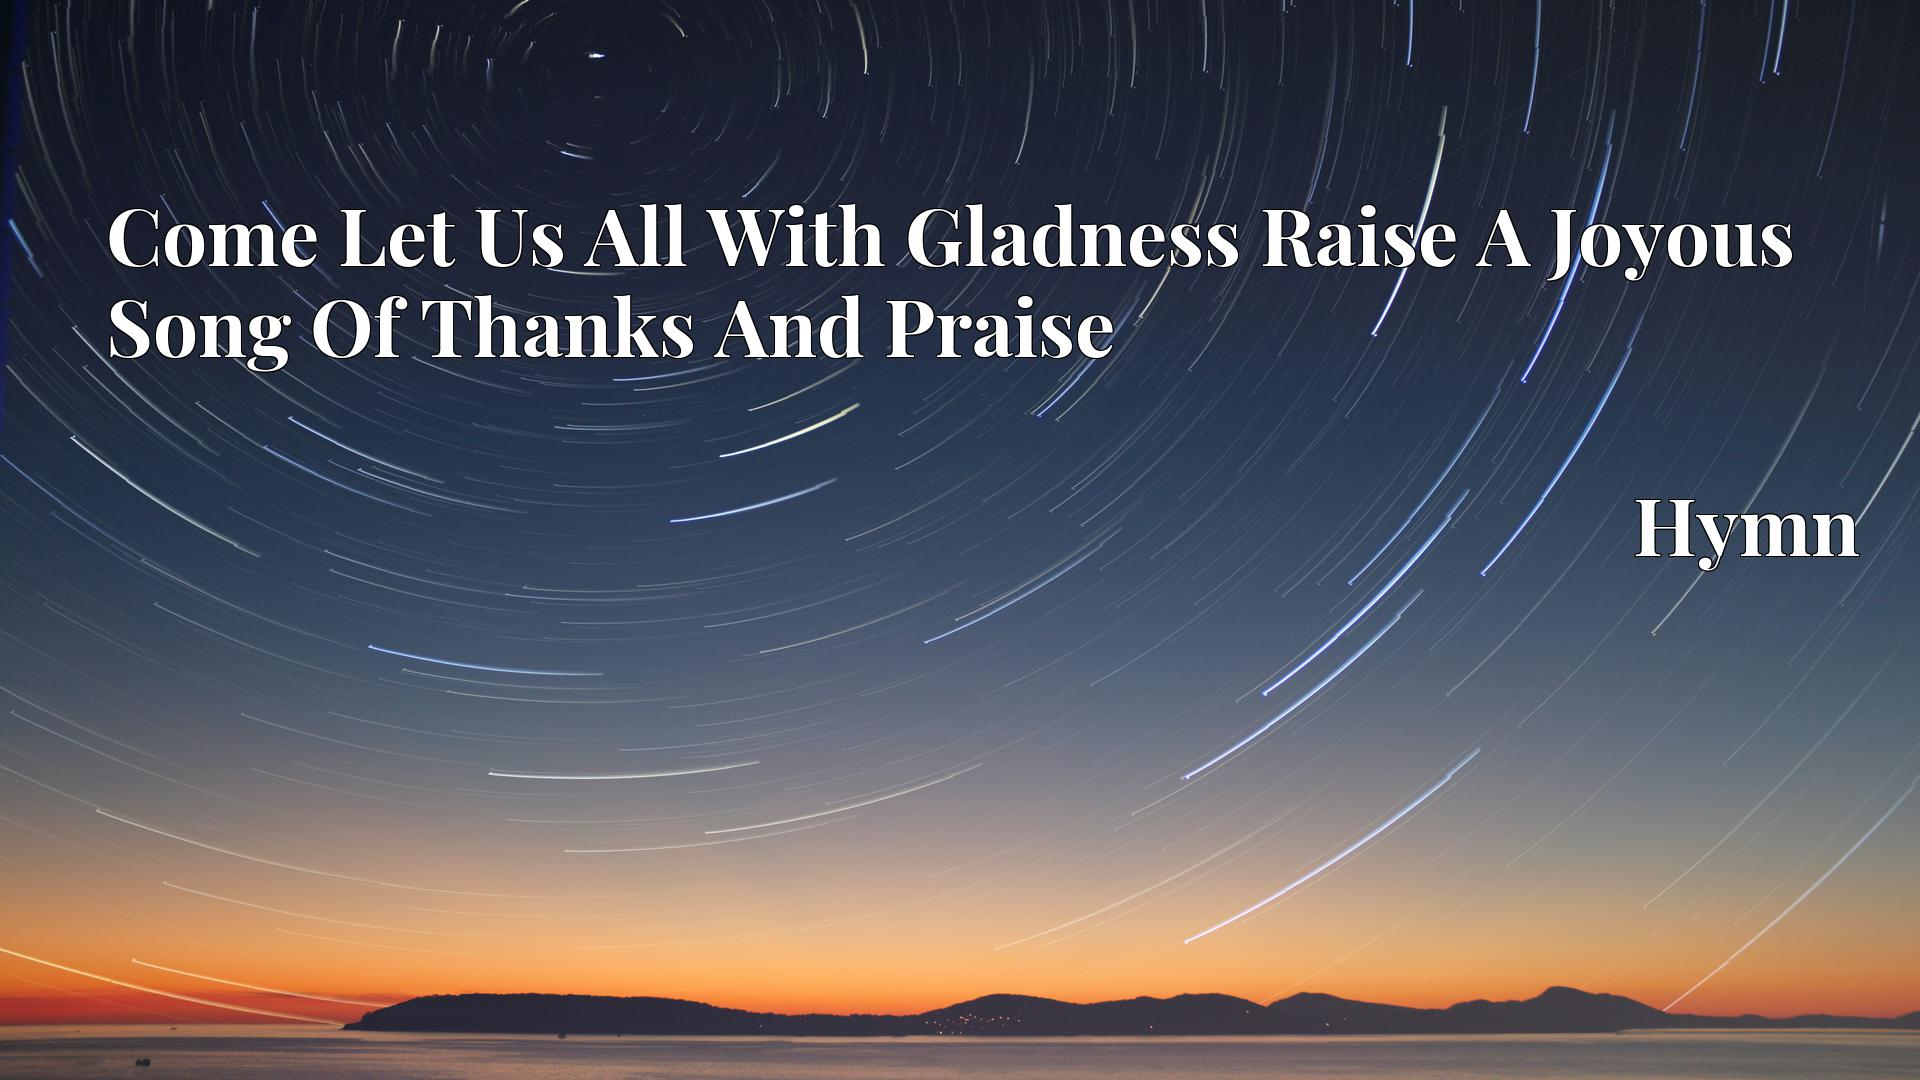 Come Let Us All With Gladness Raise A Joyous Song Of Thanks And Praise - Hymn